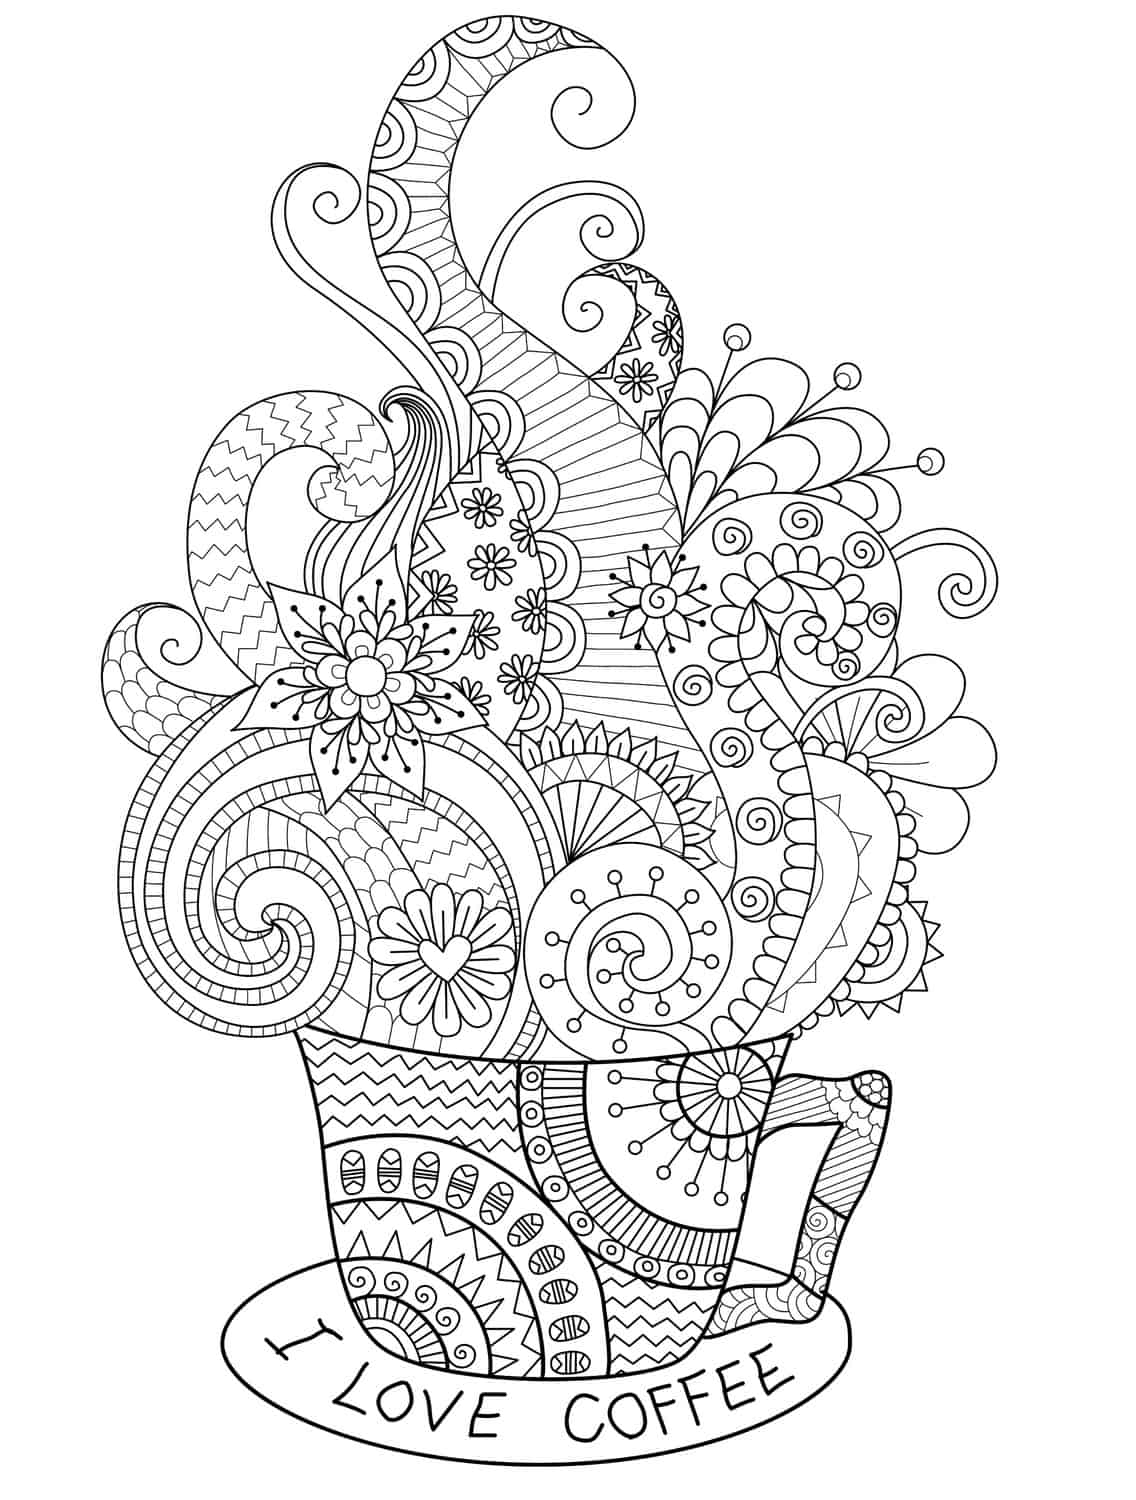 cake coloring pages for adults - coffee cake free coloring pages